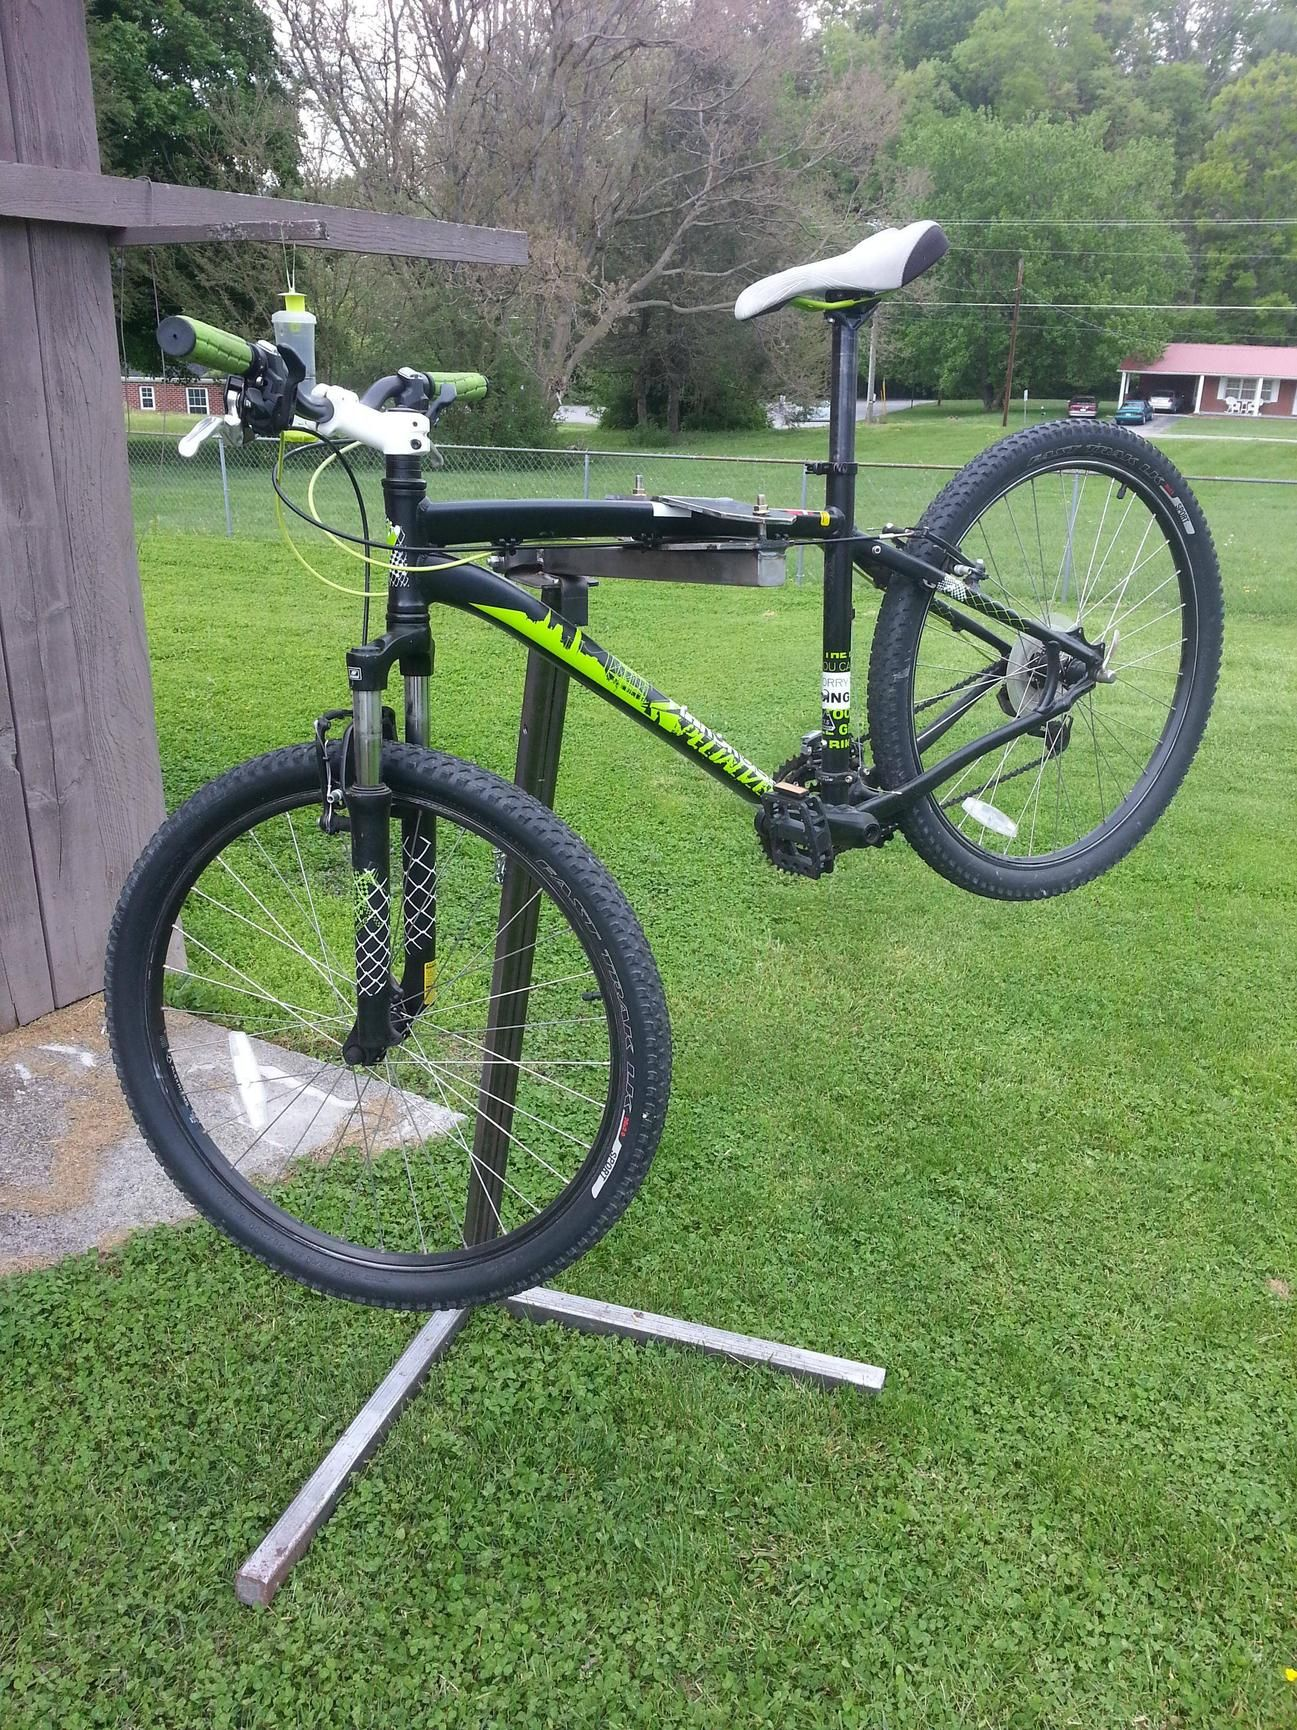 Home Made Bike Work Stand Bike Work Stand Bicycle Work Stand Bike